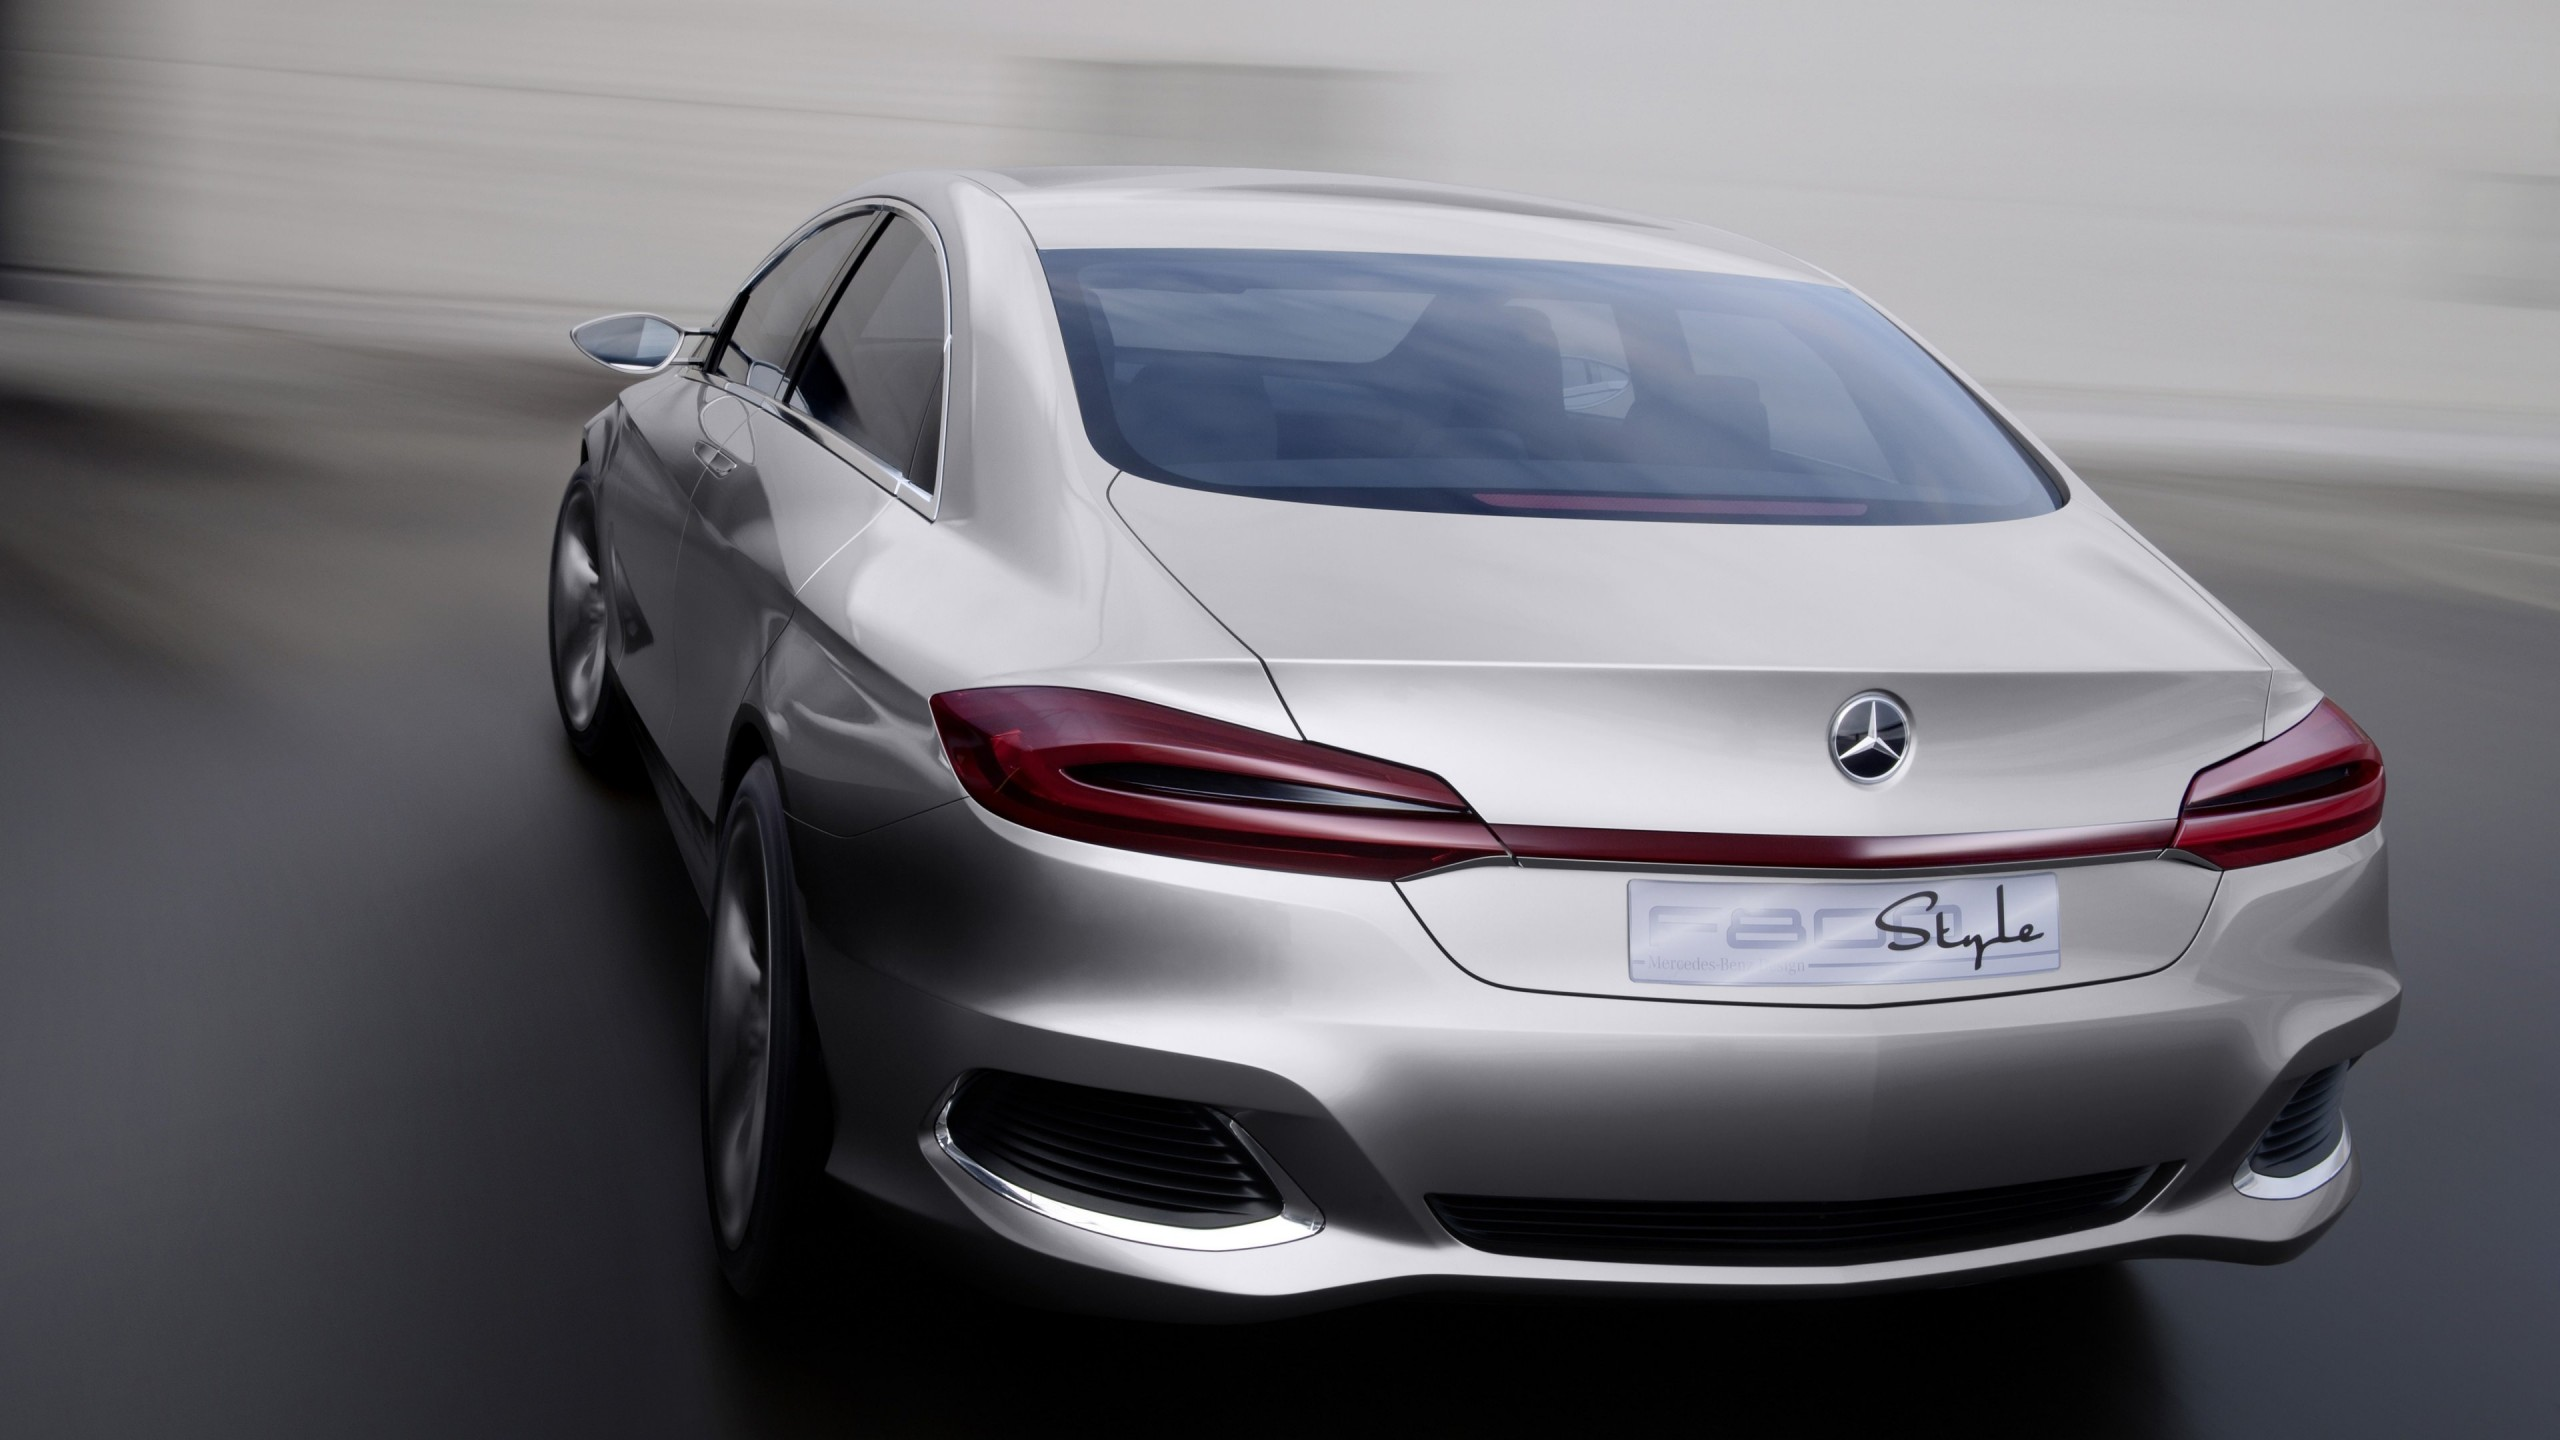 Mercedes Benz F800 Concept Rear View Wallpaper for Social Media YouTube Channel Art